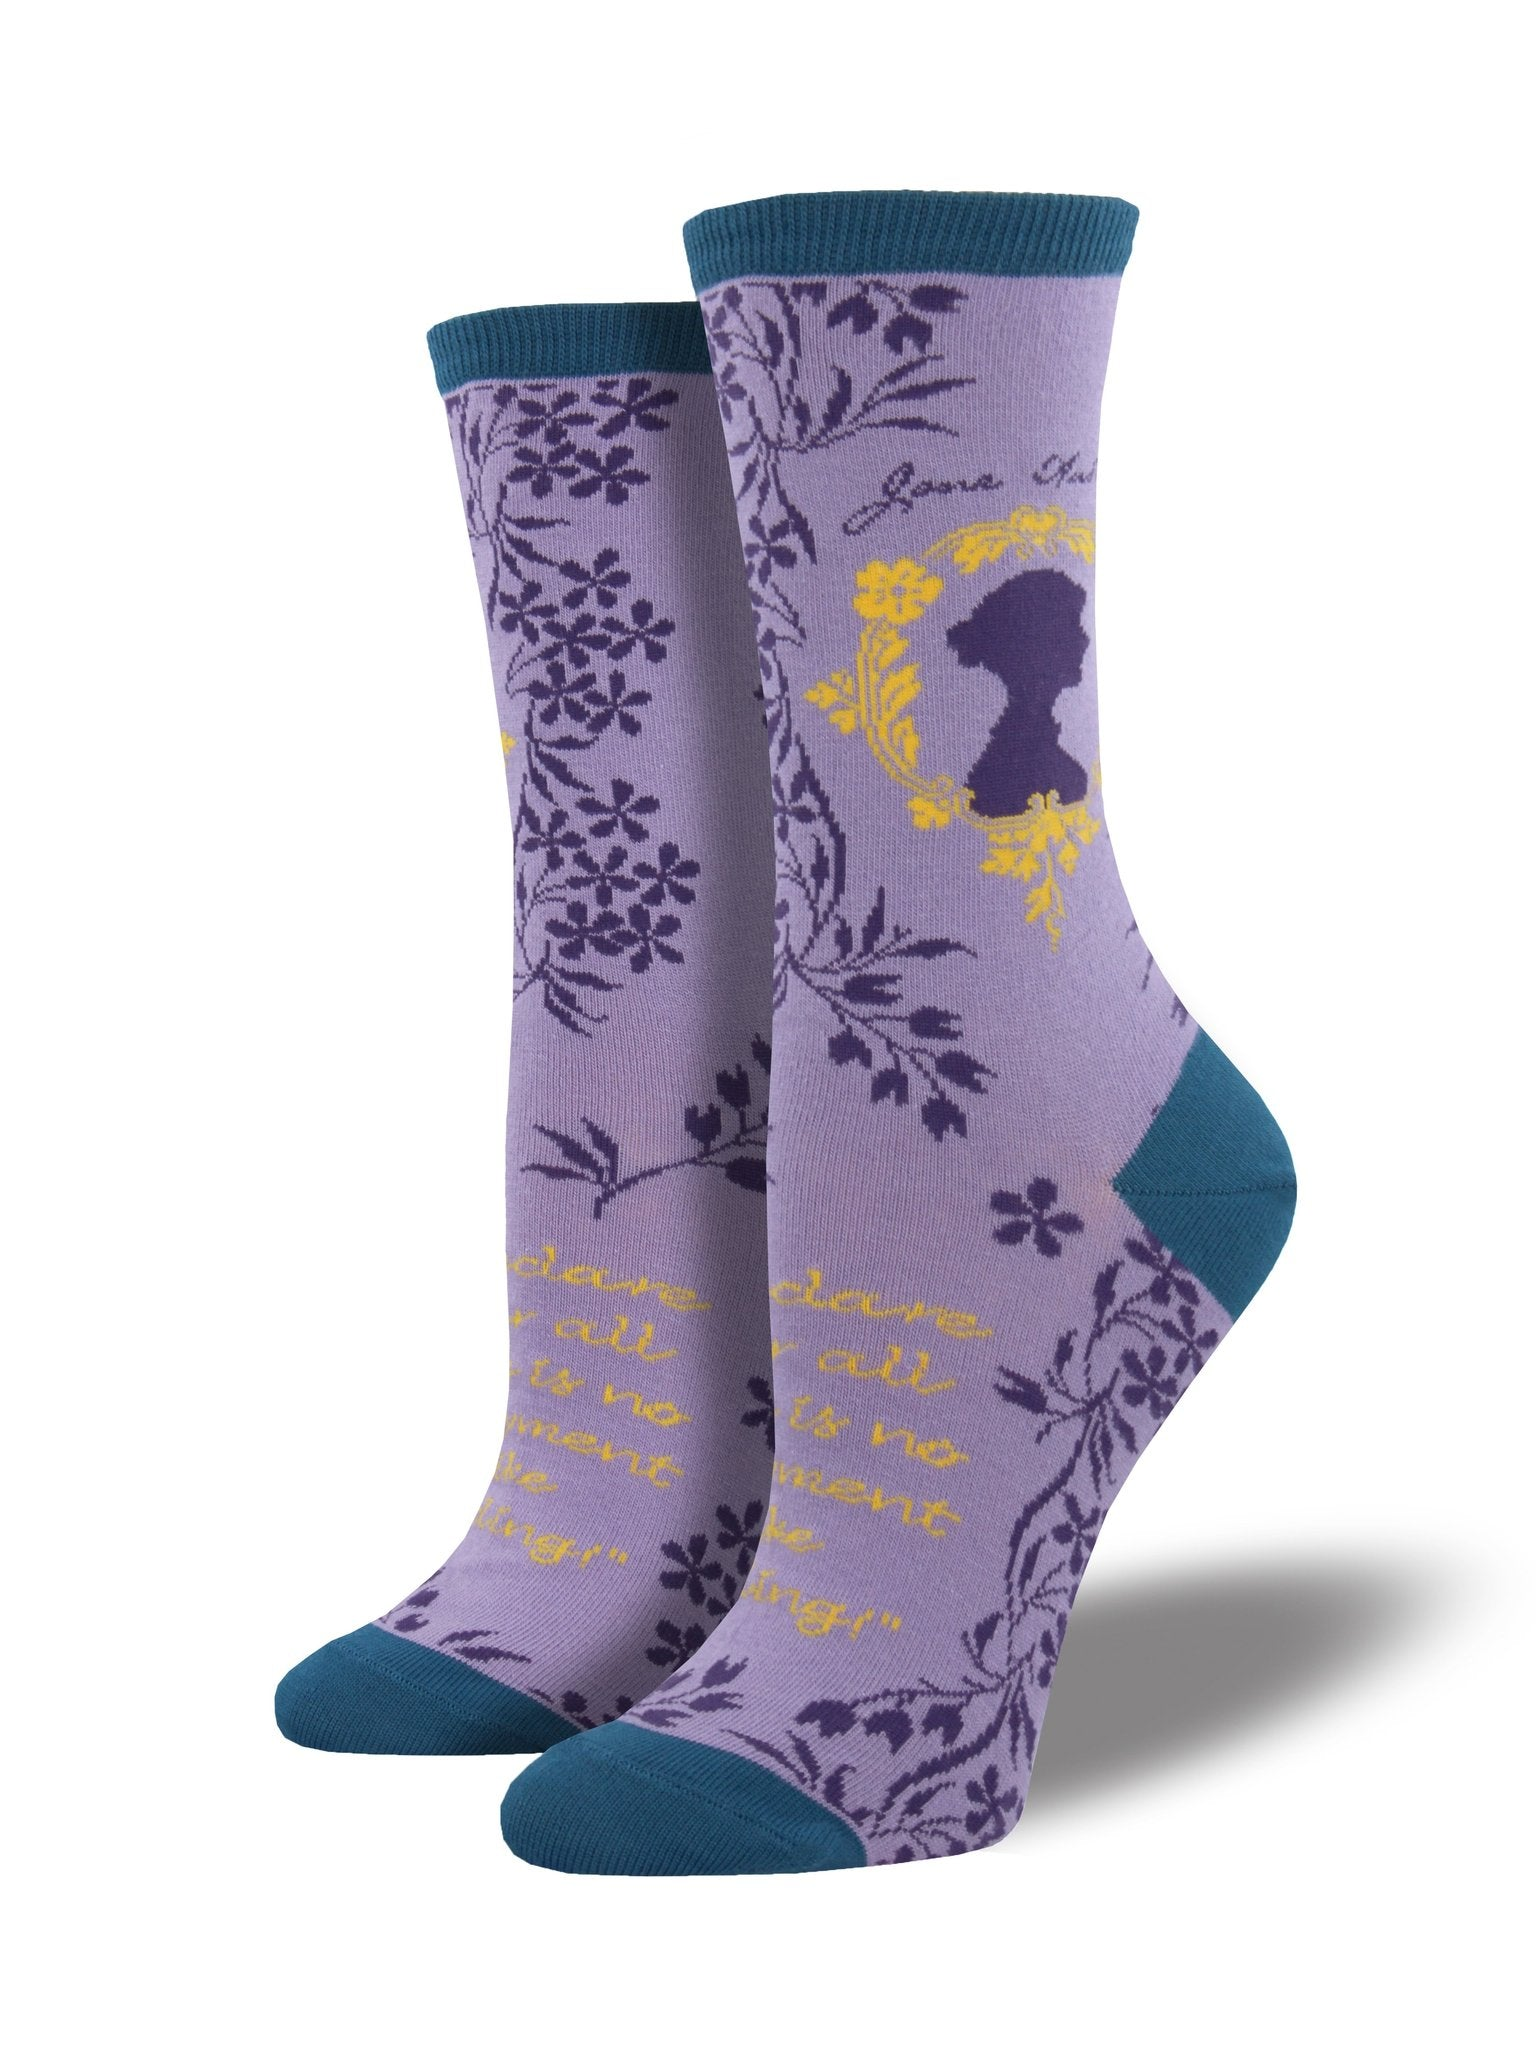 SockSmith Jane Austen Socks, Women